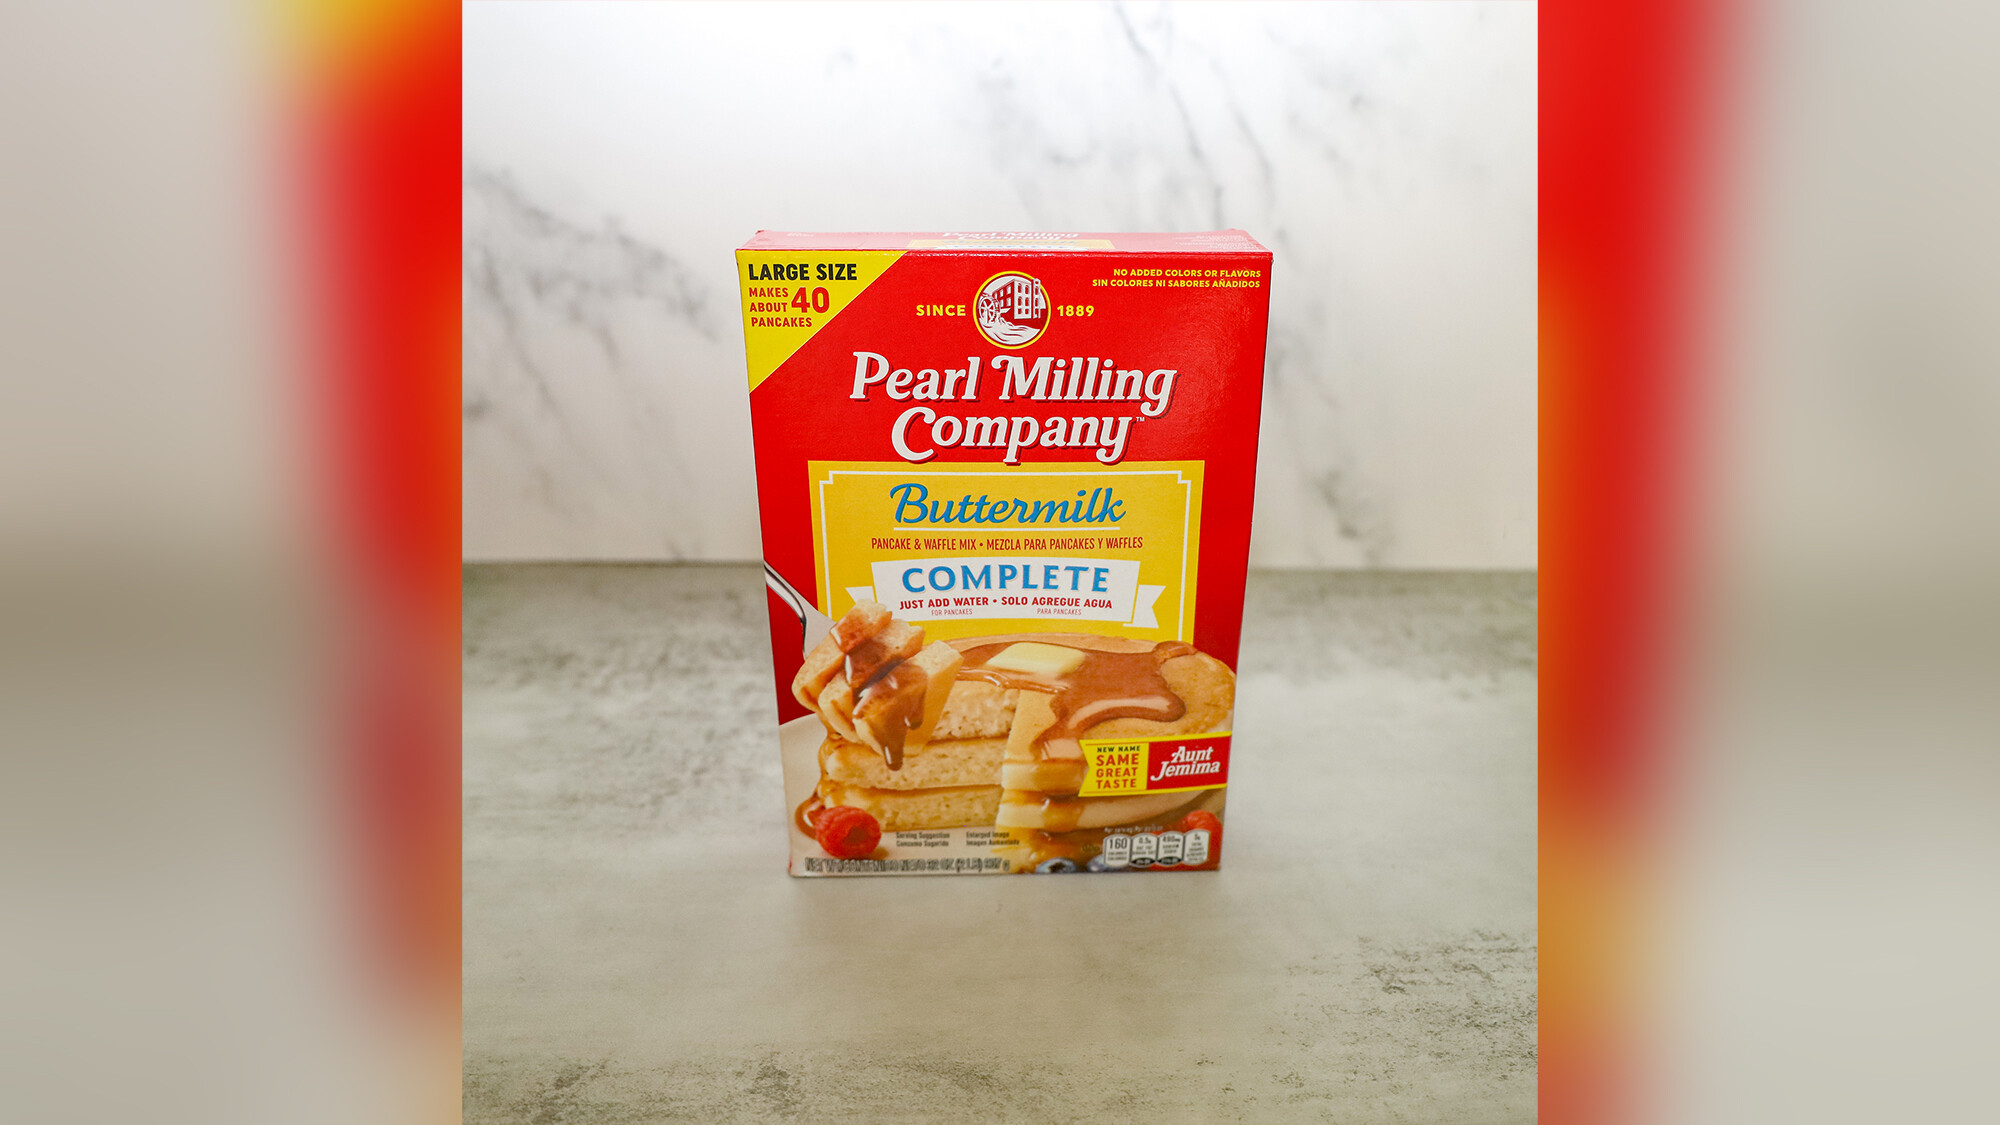 Pearl Milling Company's new ads remind customers it used to be Aunt Jemima — without mentioning the racist brand